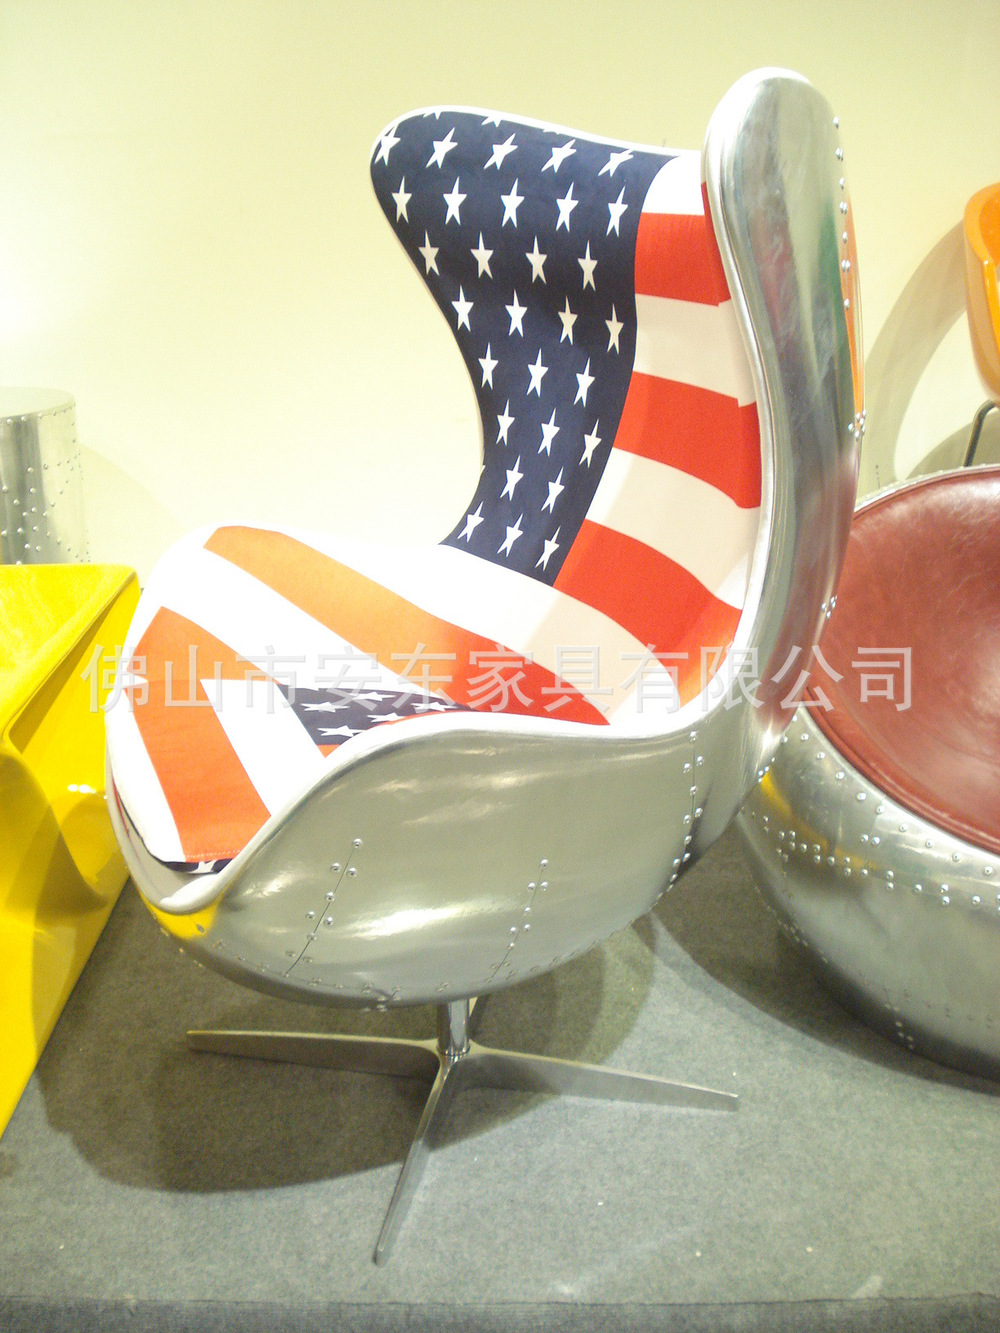 Latest Onlineshop Loft Aluminium Leder Lounge Sofa Stuhl Egg Chair Ei  Kreative Mode Union Jack Stars And Stripes Computer Rotating Chair  Aliexpress Mobil ...